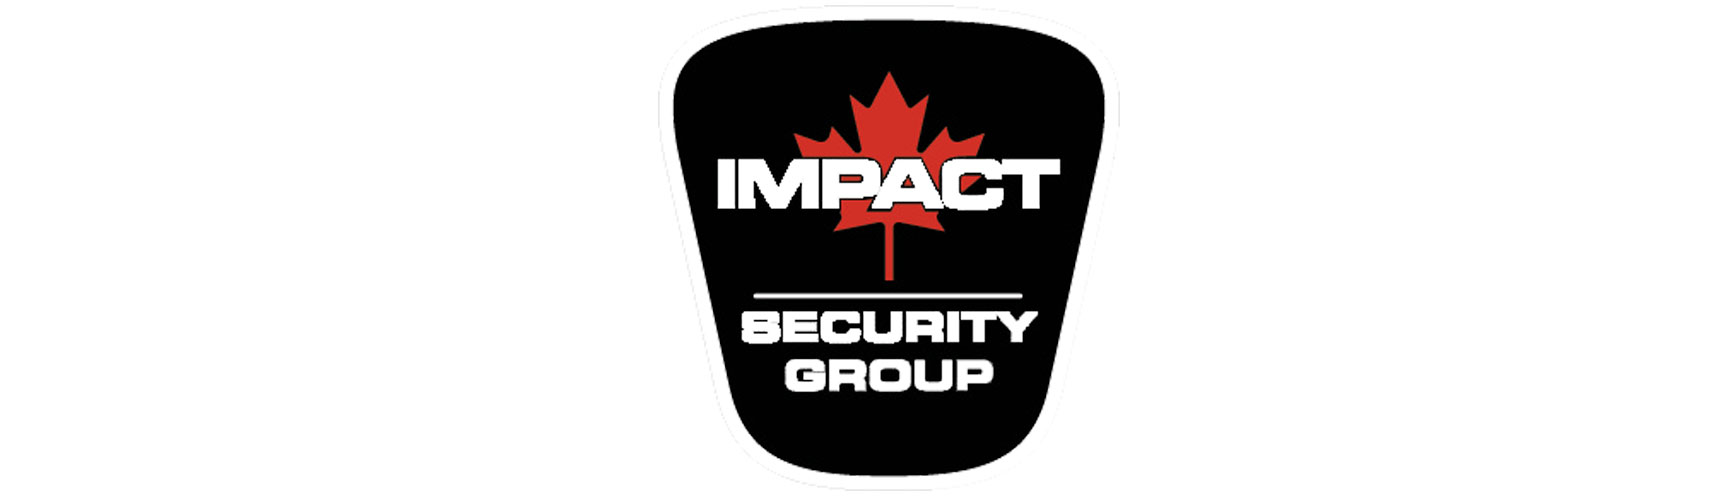 10---Logo_Impact_Security_Group_1720x500